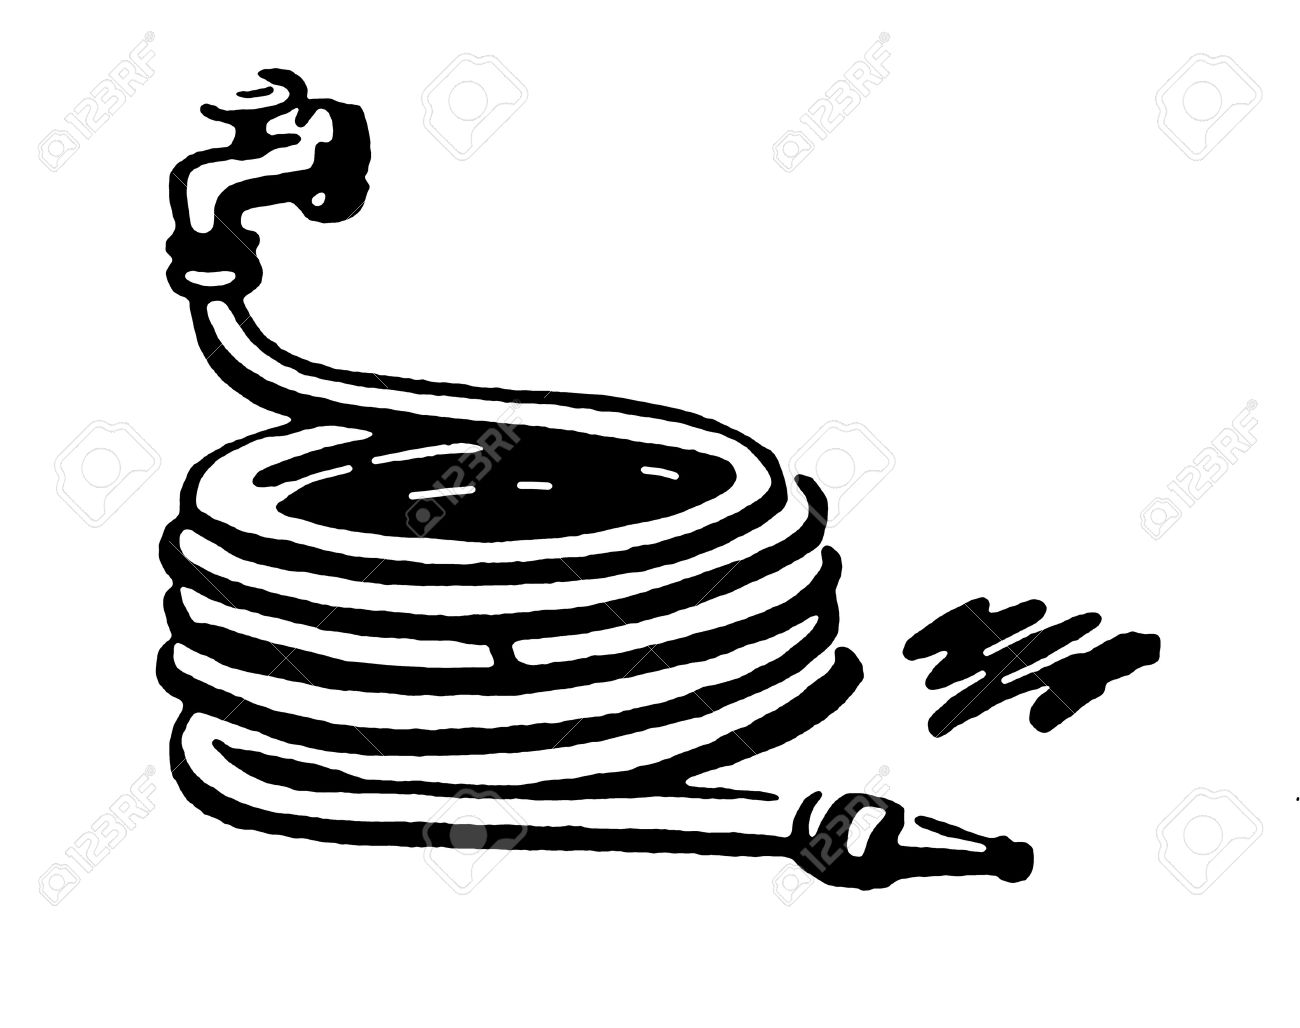 hosepipe clipart   cliparts  images